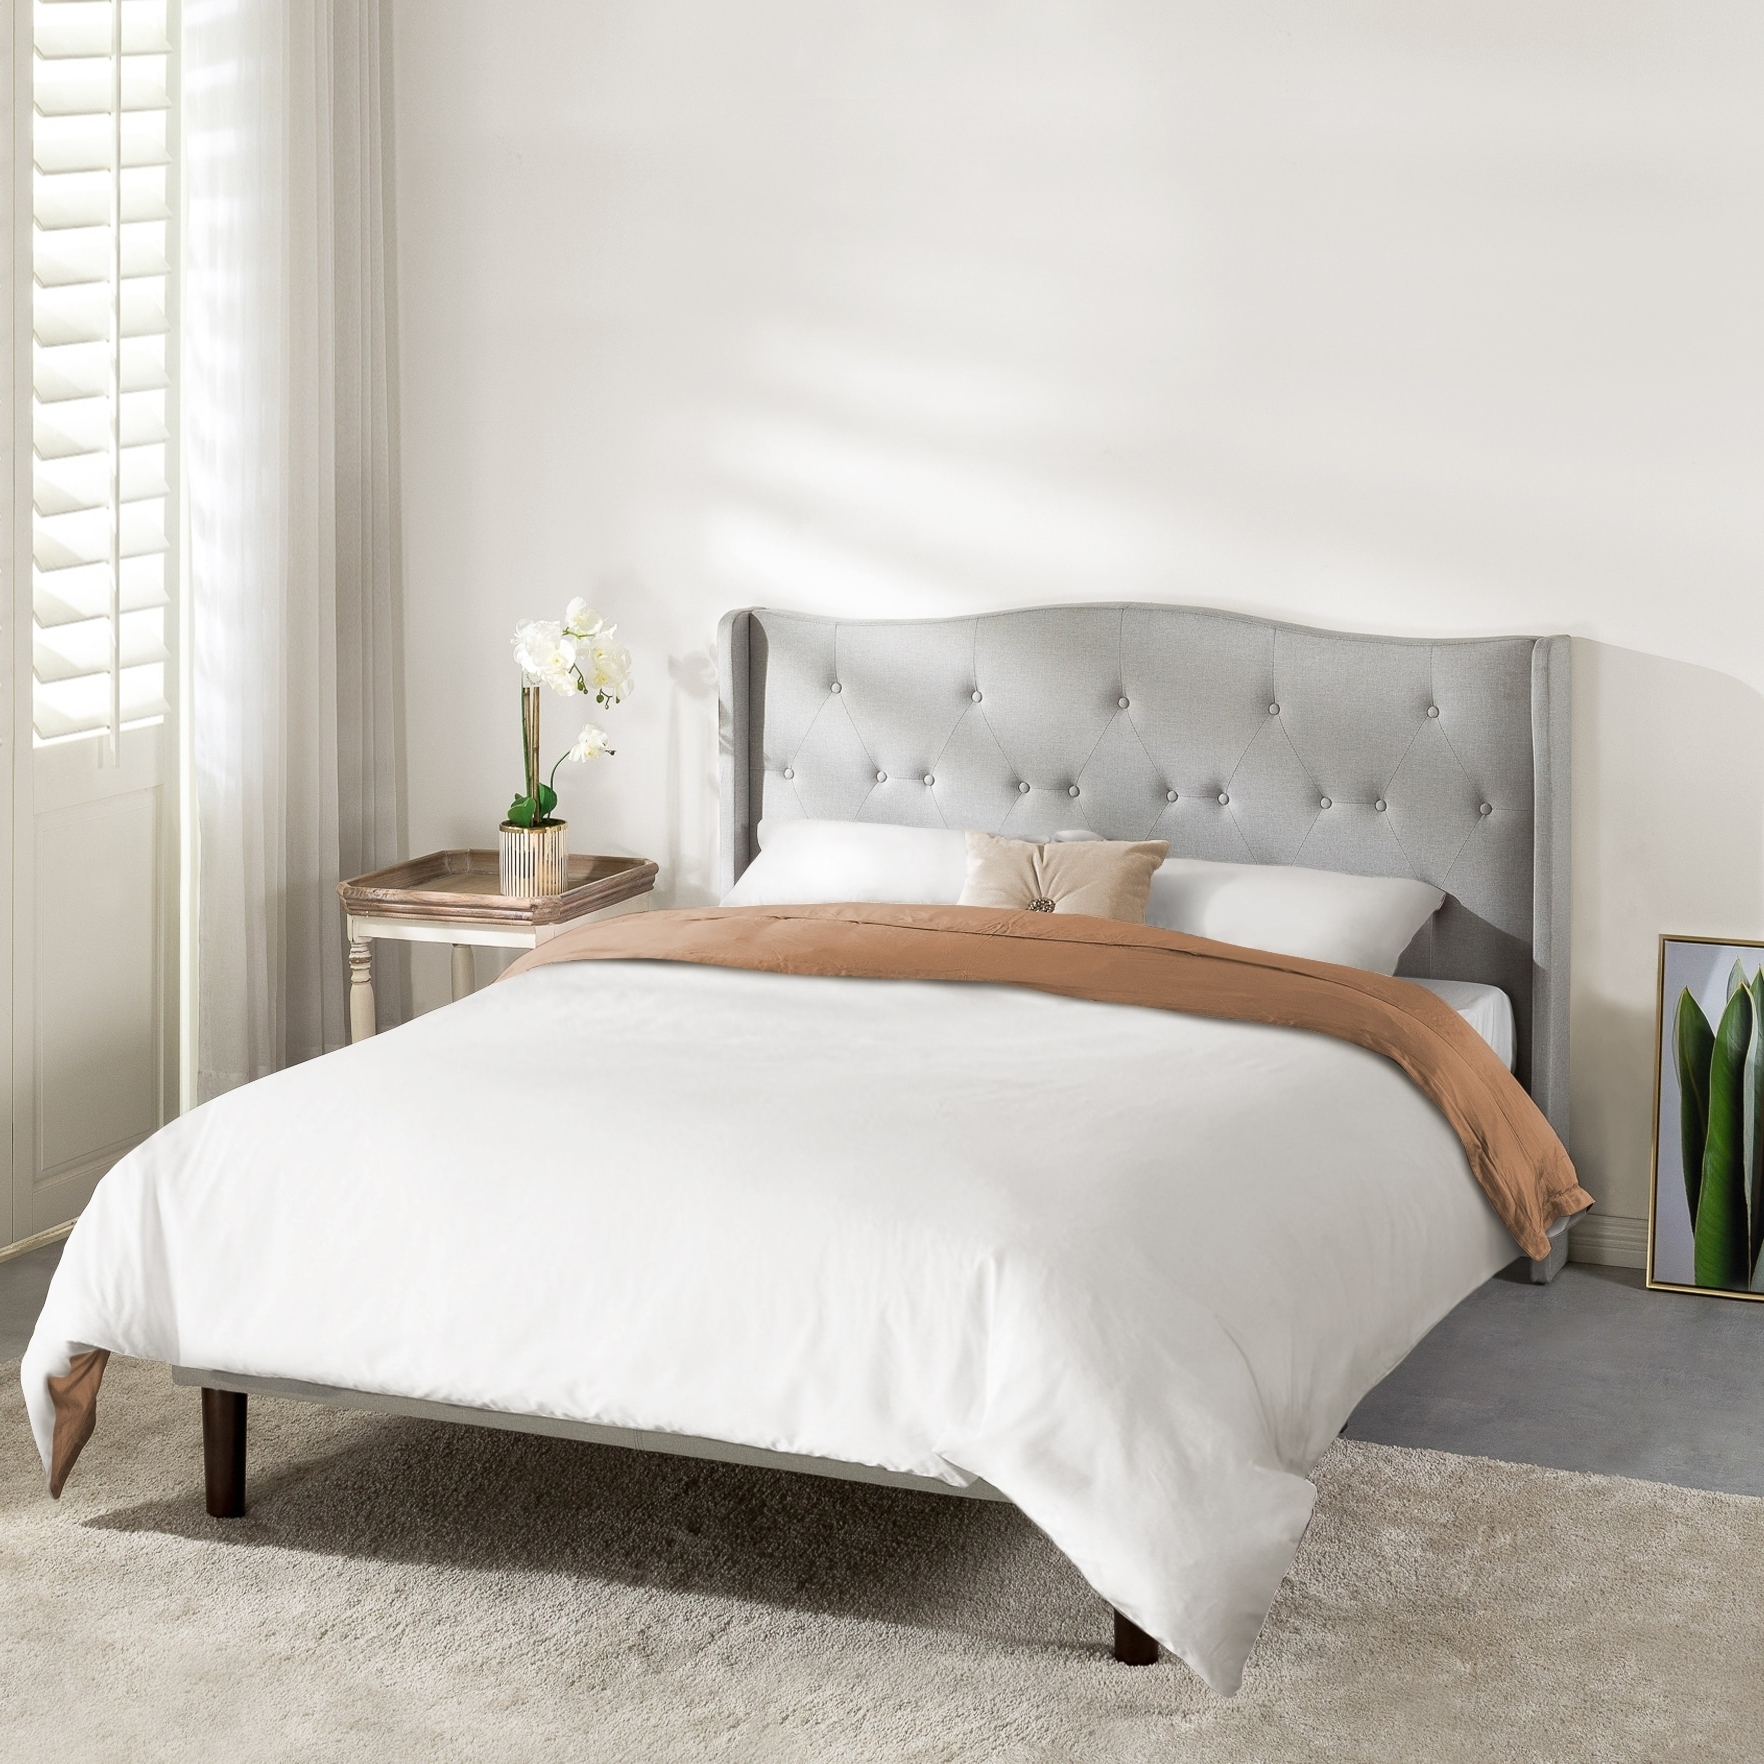 Preferred Amabel Patio Diamond Wooden Garden Benches In Amabel Upholstered Platform Bed, Modern Tufted Wingback Headboard, Real Wooden Slats And Legs, Light Grey – Crown Comfort (View 29 of 30)